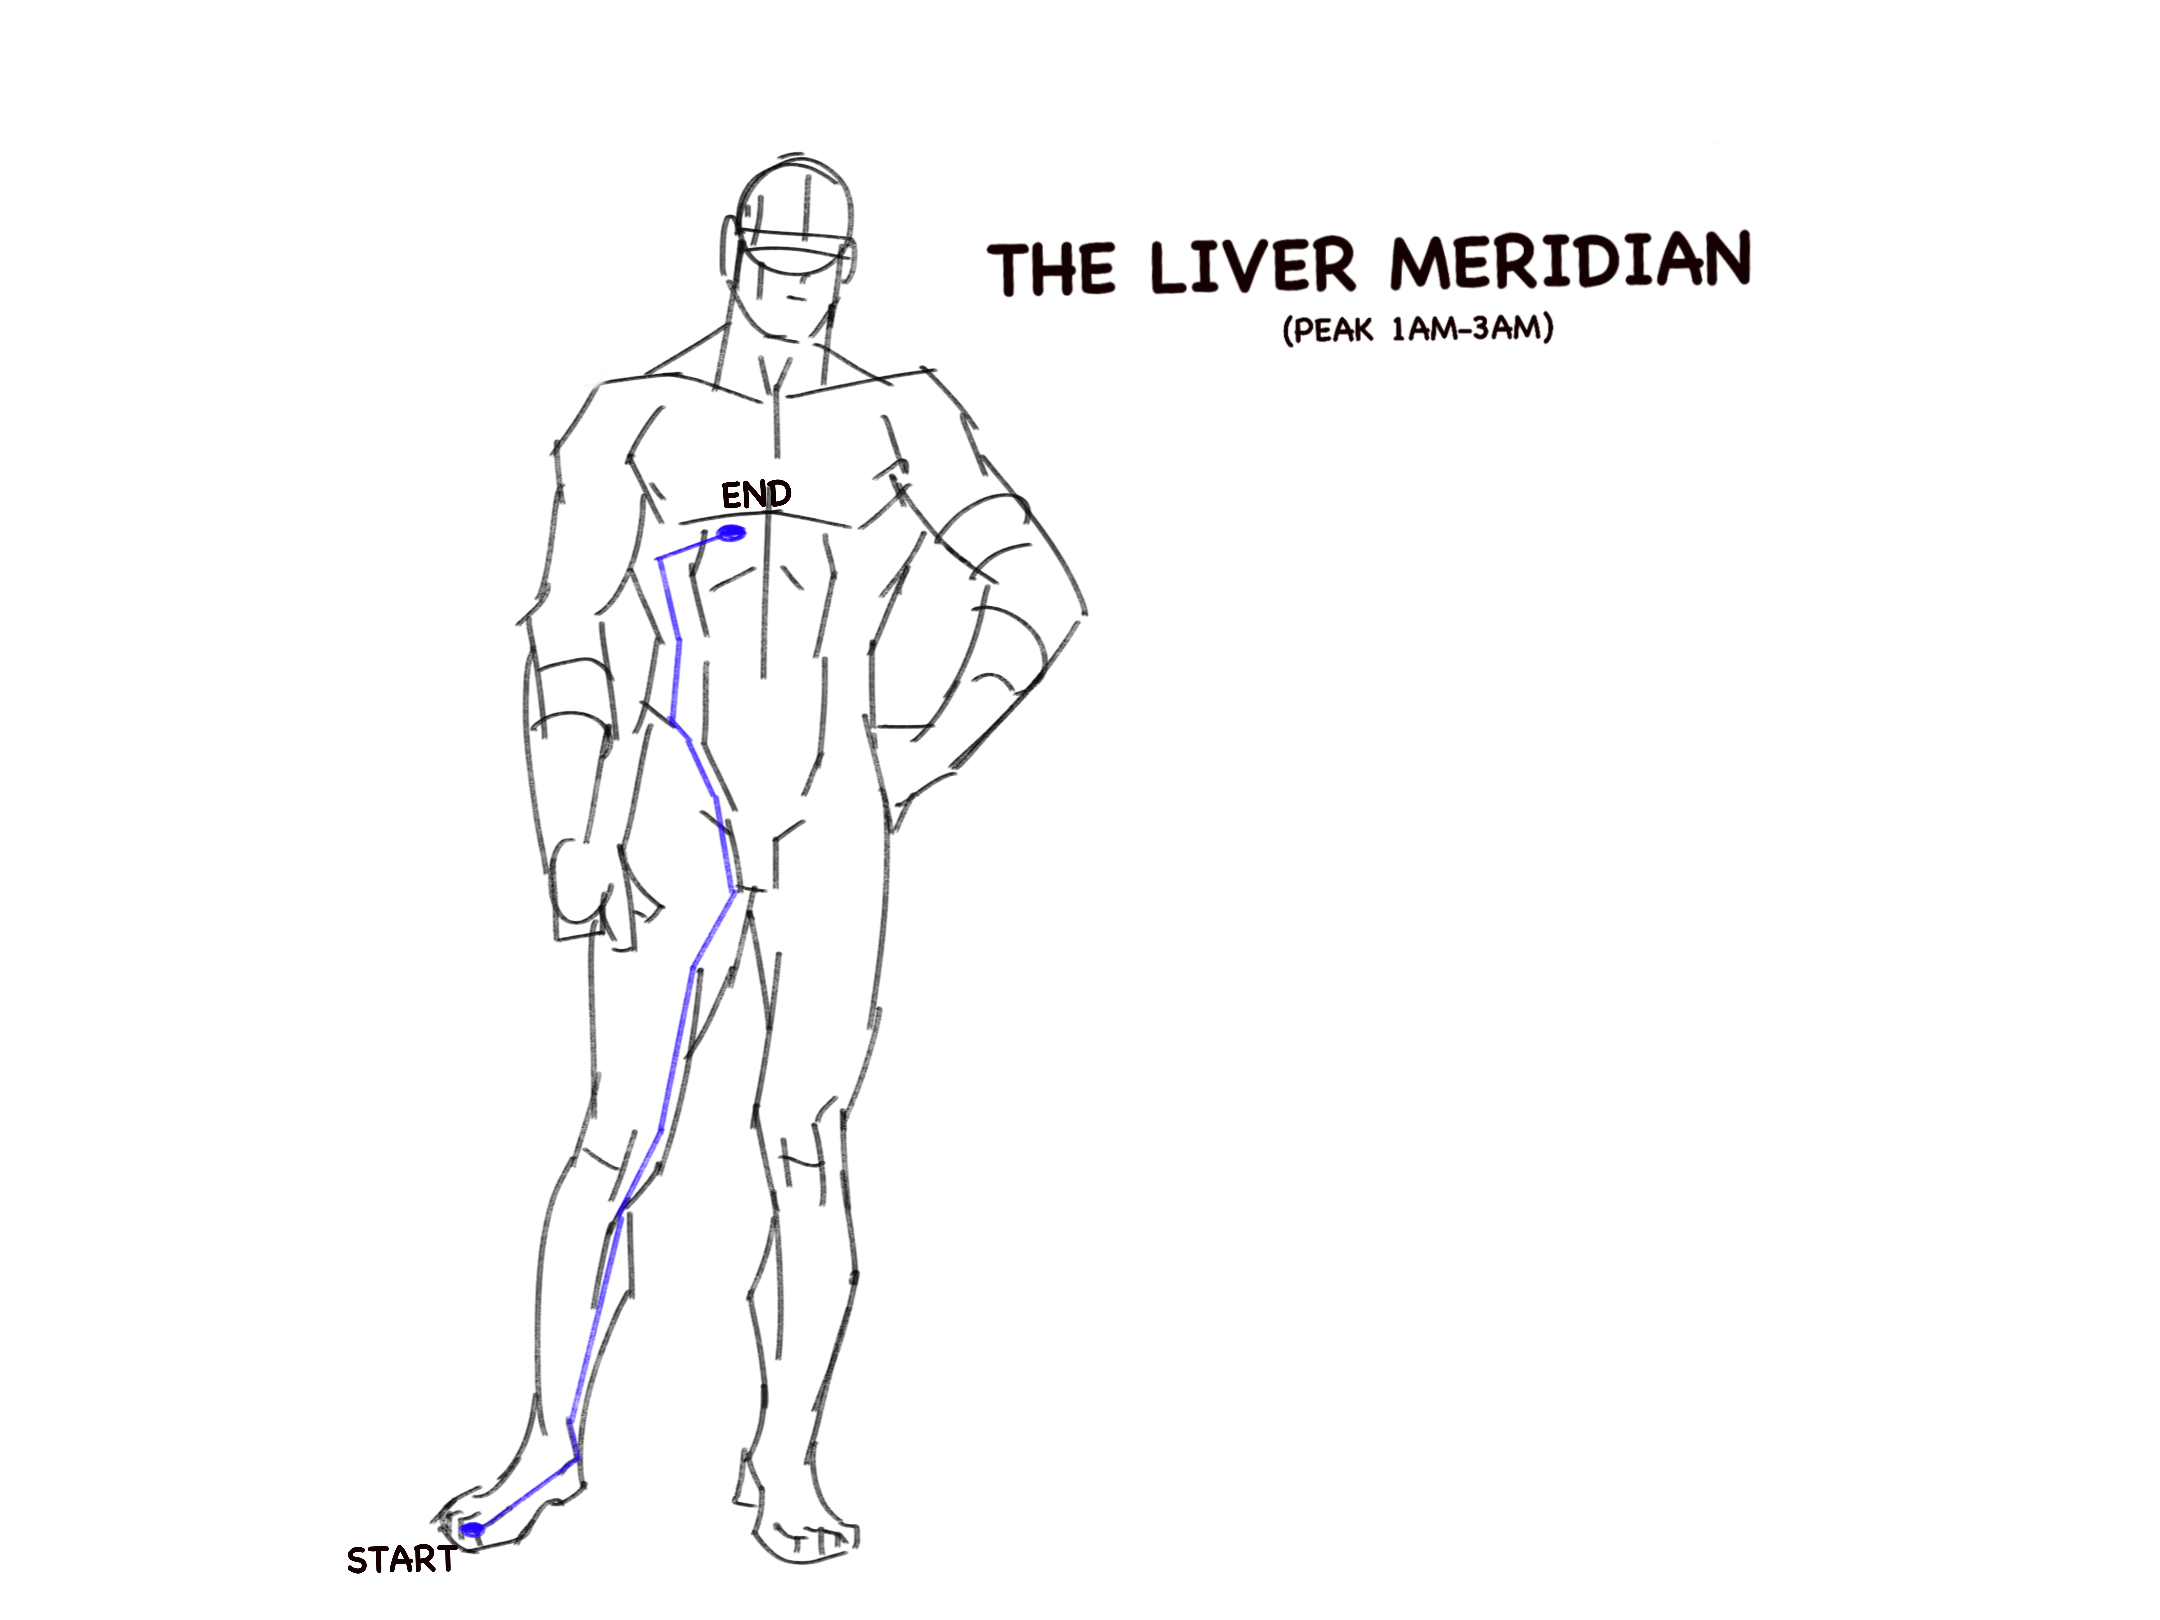 The liver meridian